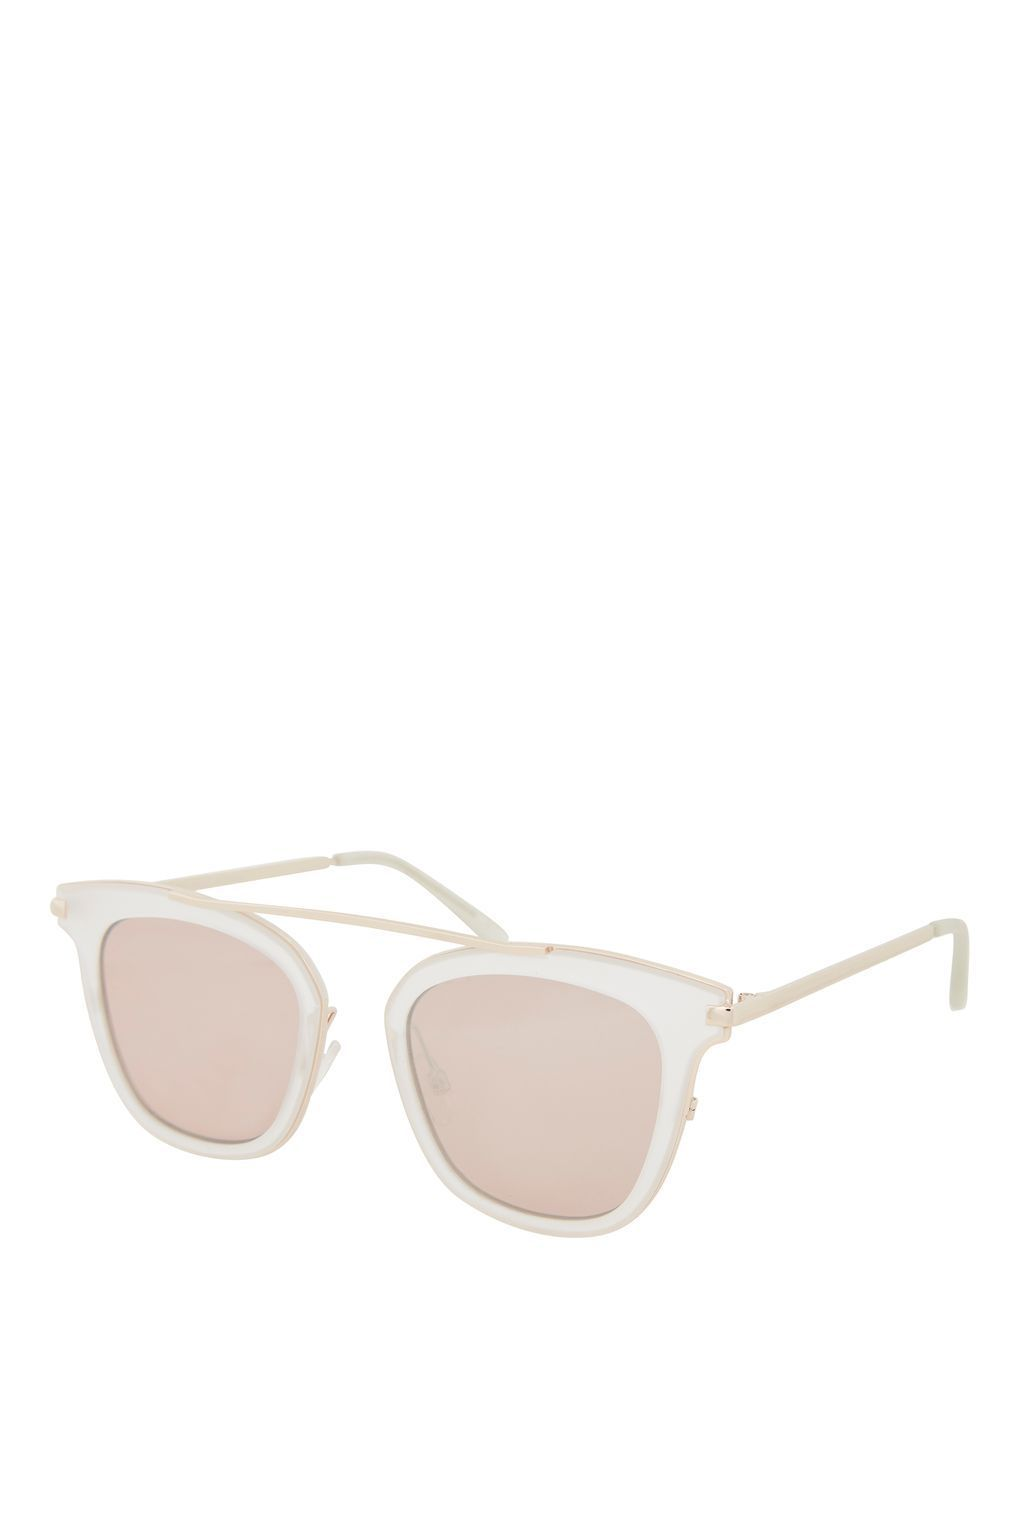 ★海外限定★TOPSHOP/WEBB Brow Bar Square Sunglasses